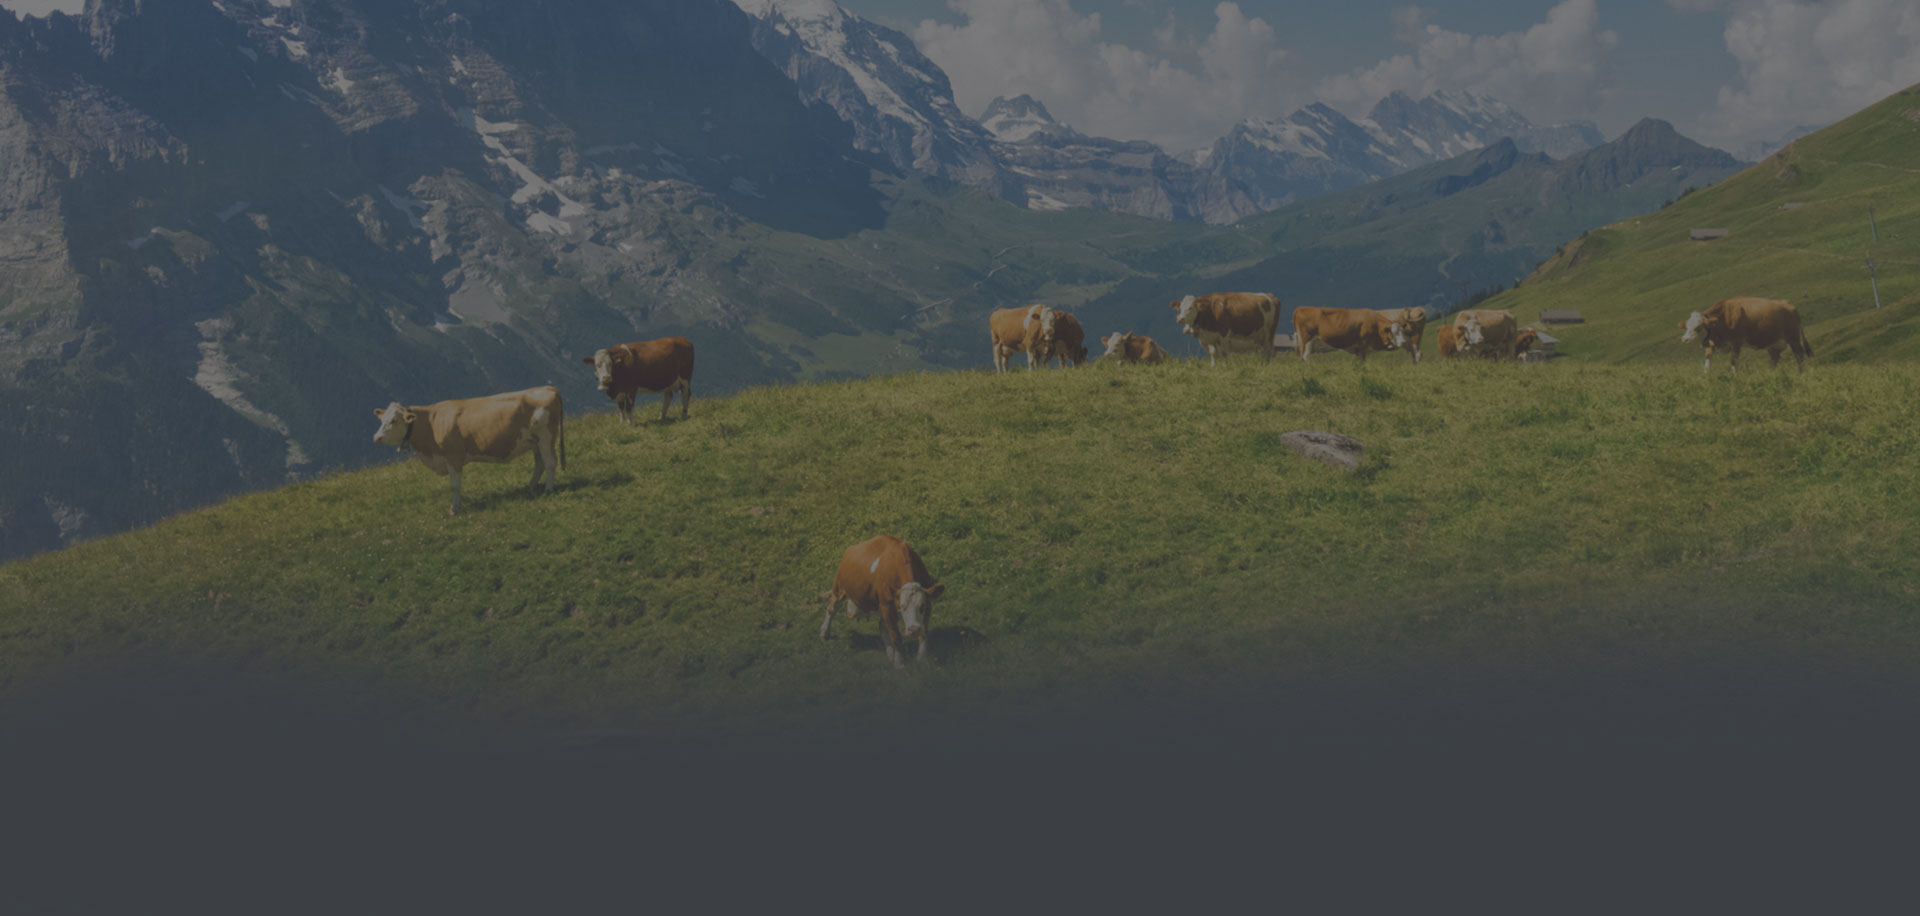 Switzerland Agricultural Internship Travel And Work